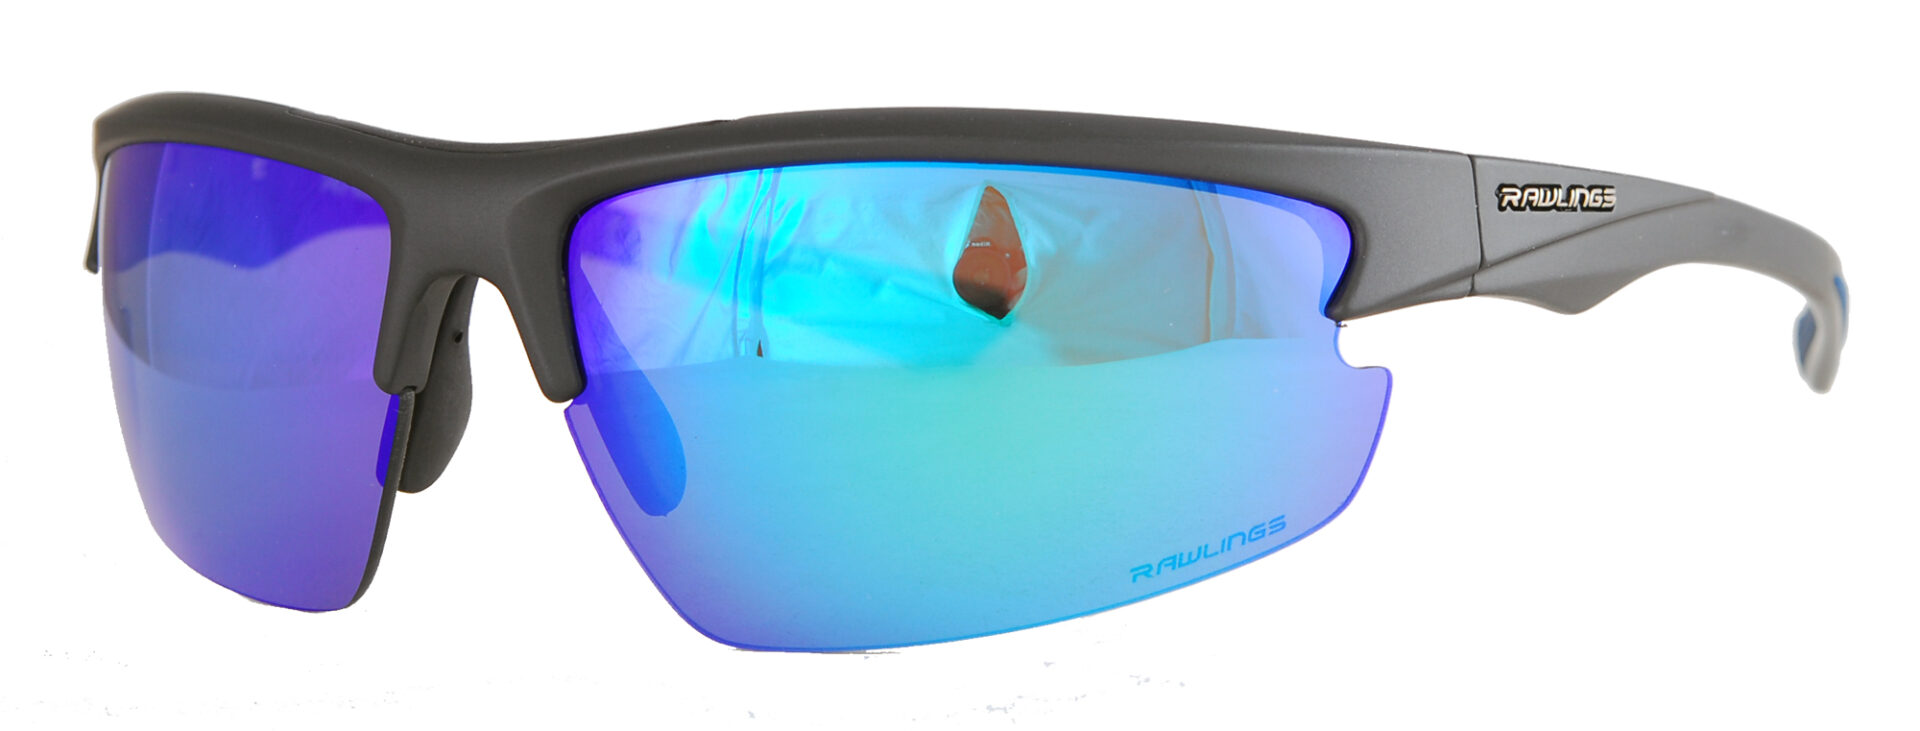 Sunglasses with blue lens